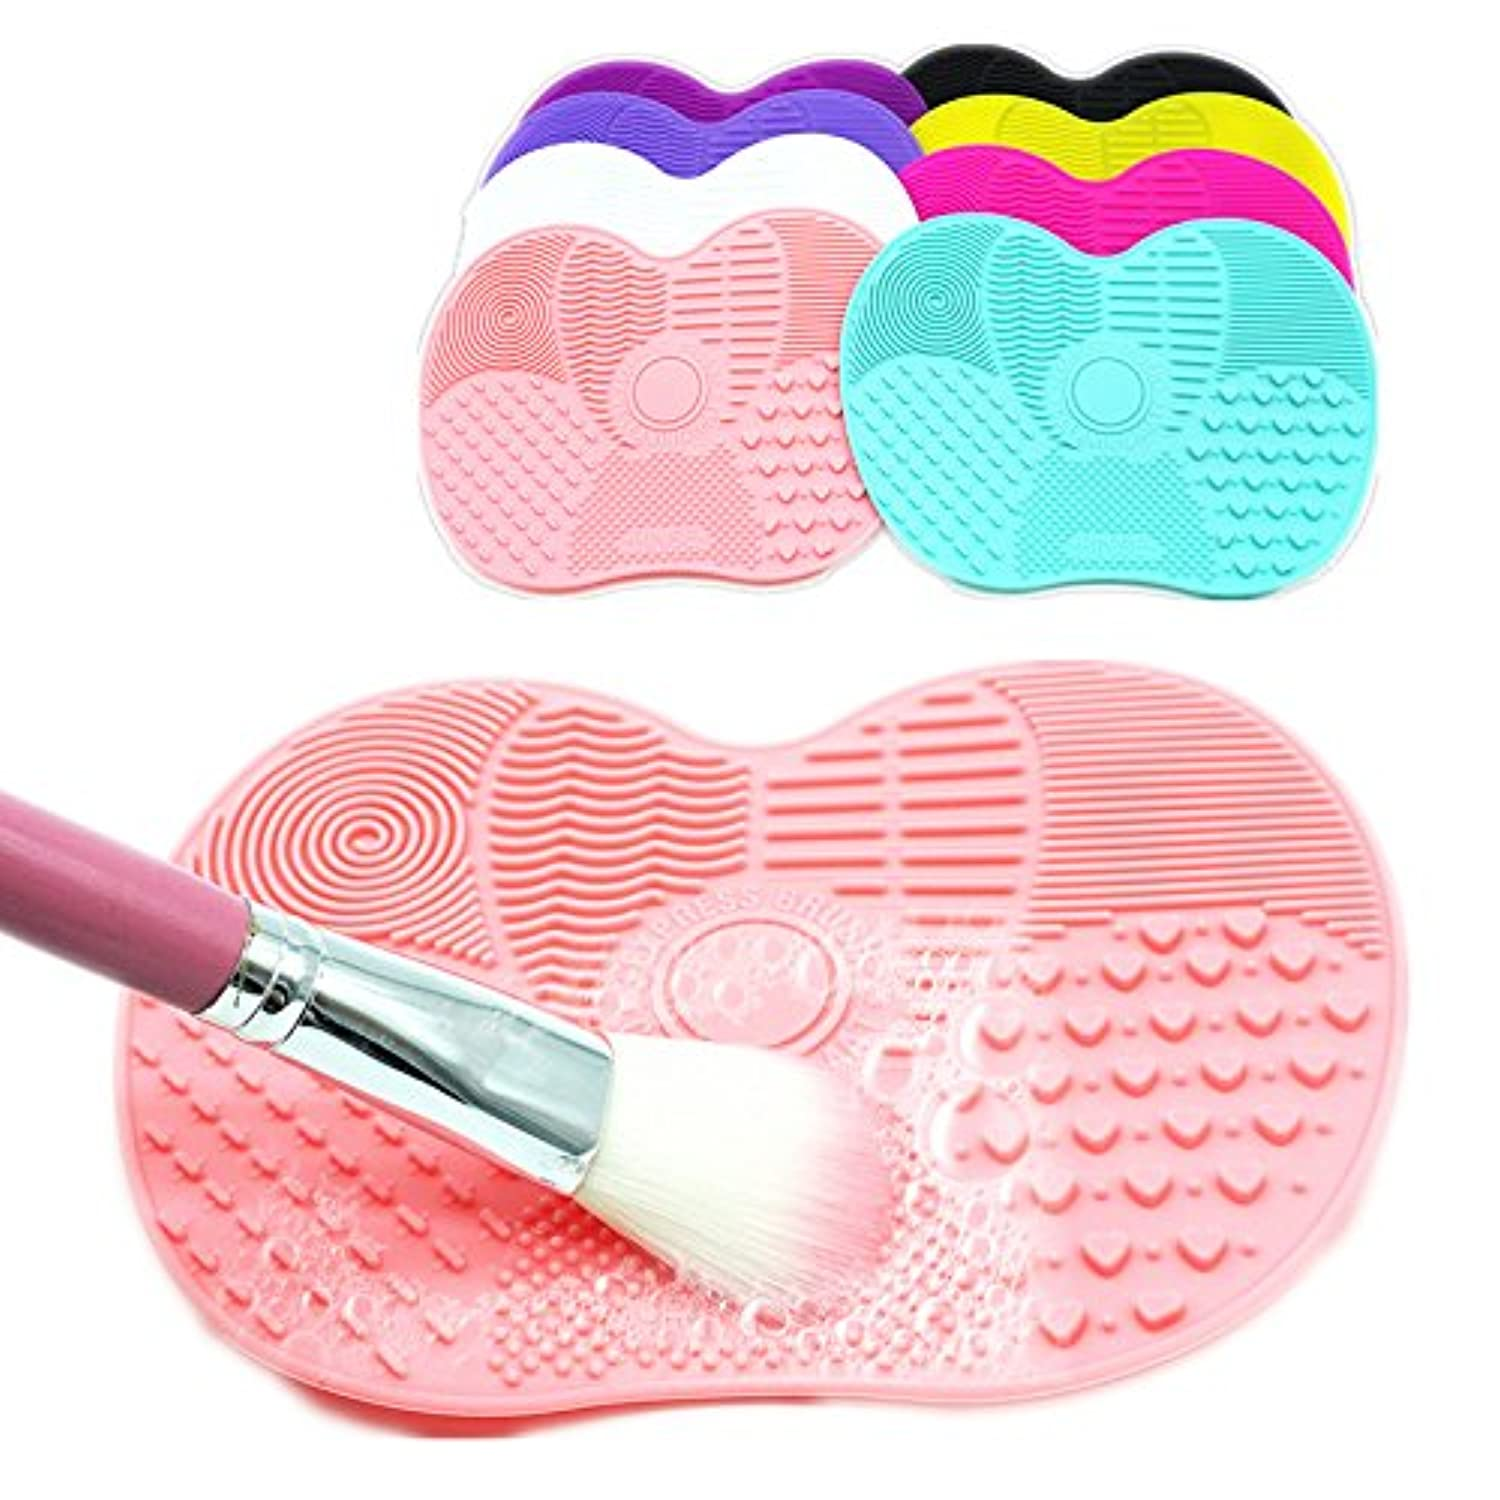 (Black) Silicone Brush Cleaner Mat Washing Tools for Cosmetic Make up Eyebrow Brushes Cleaning Pad Scrubber Board Makeup Cleaner